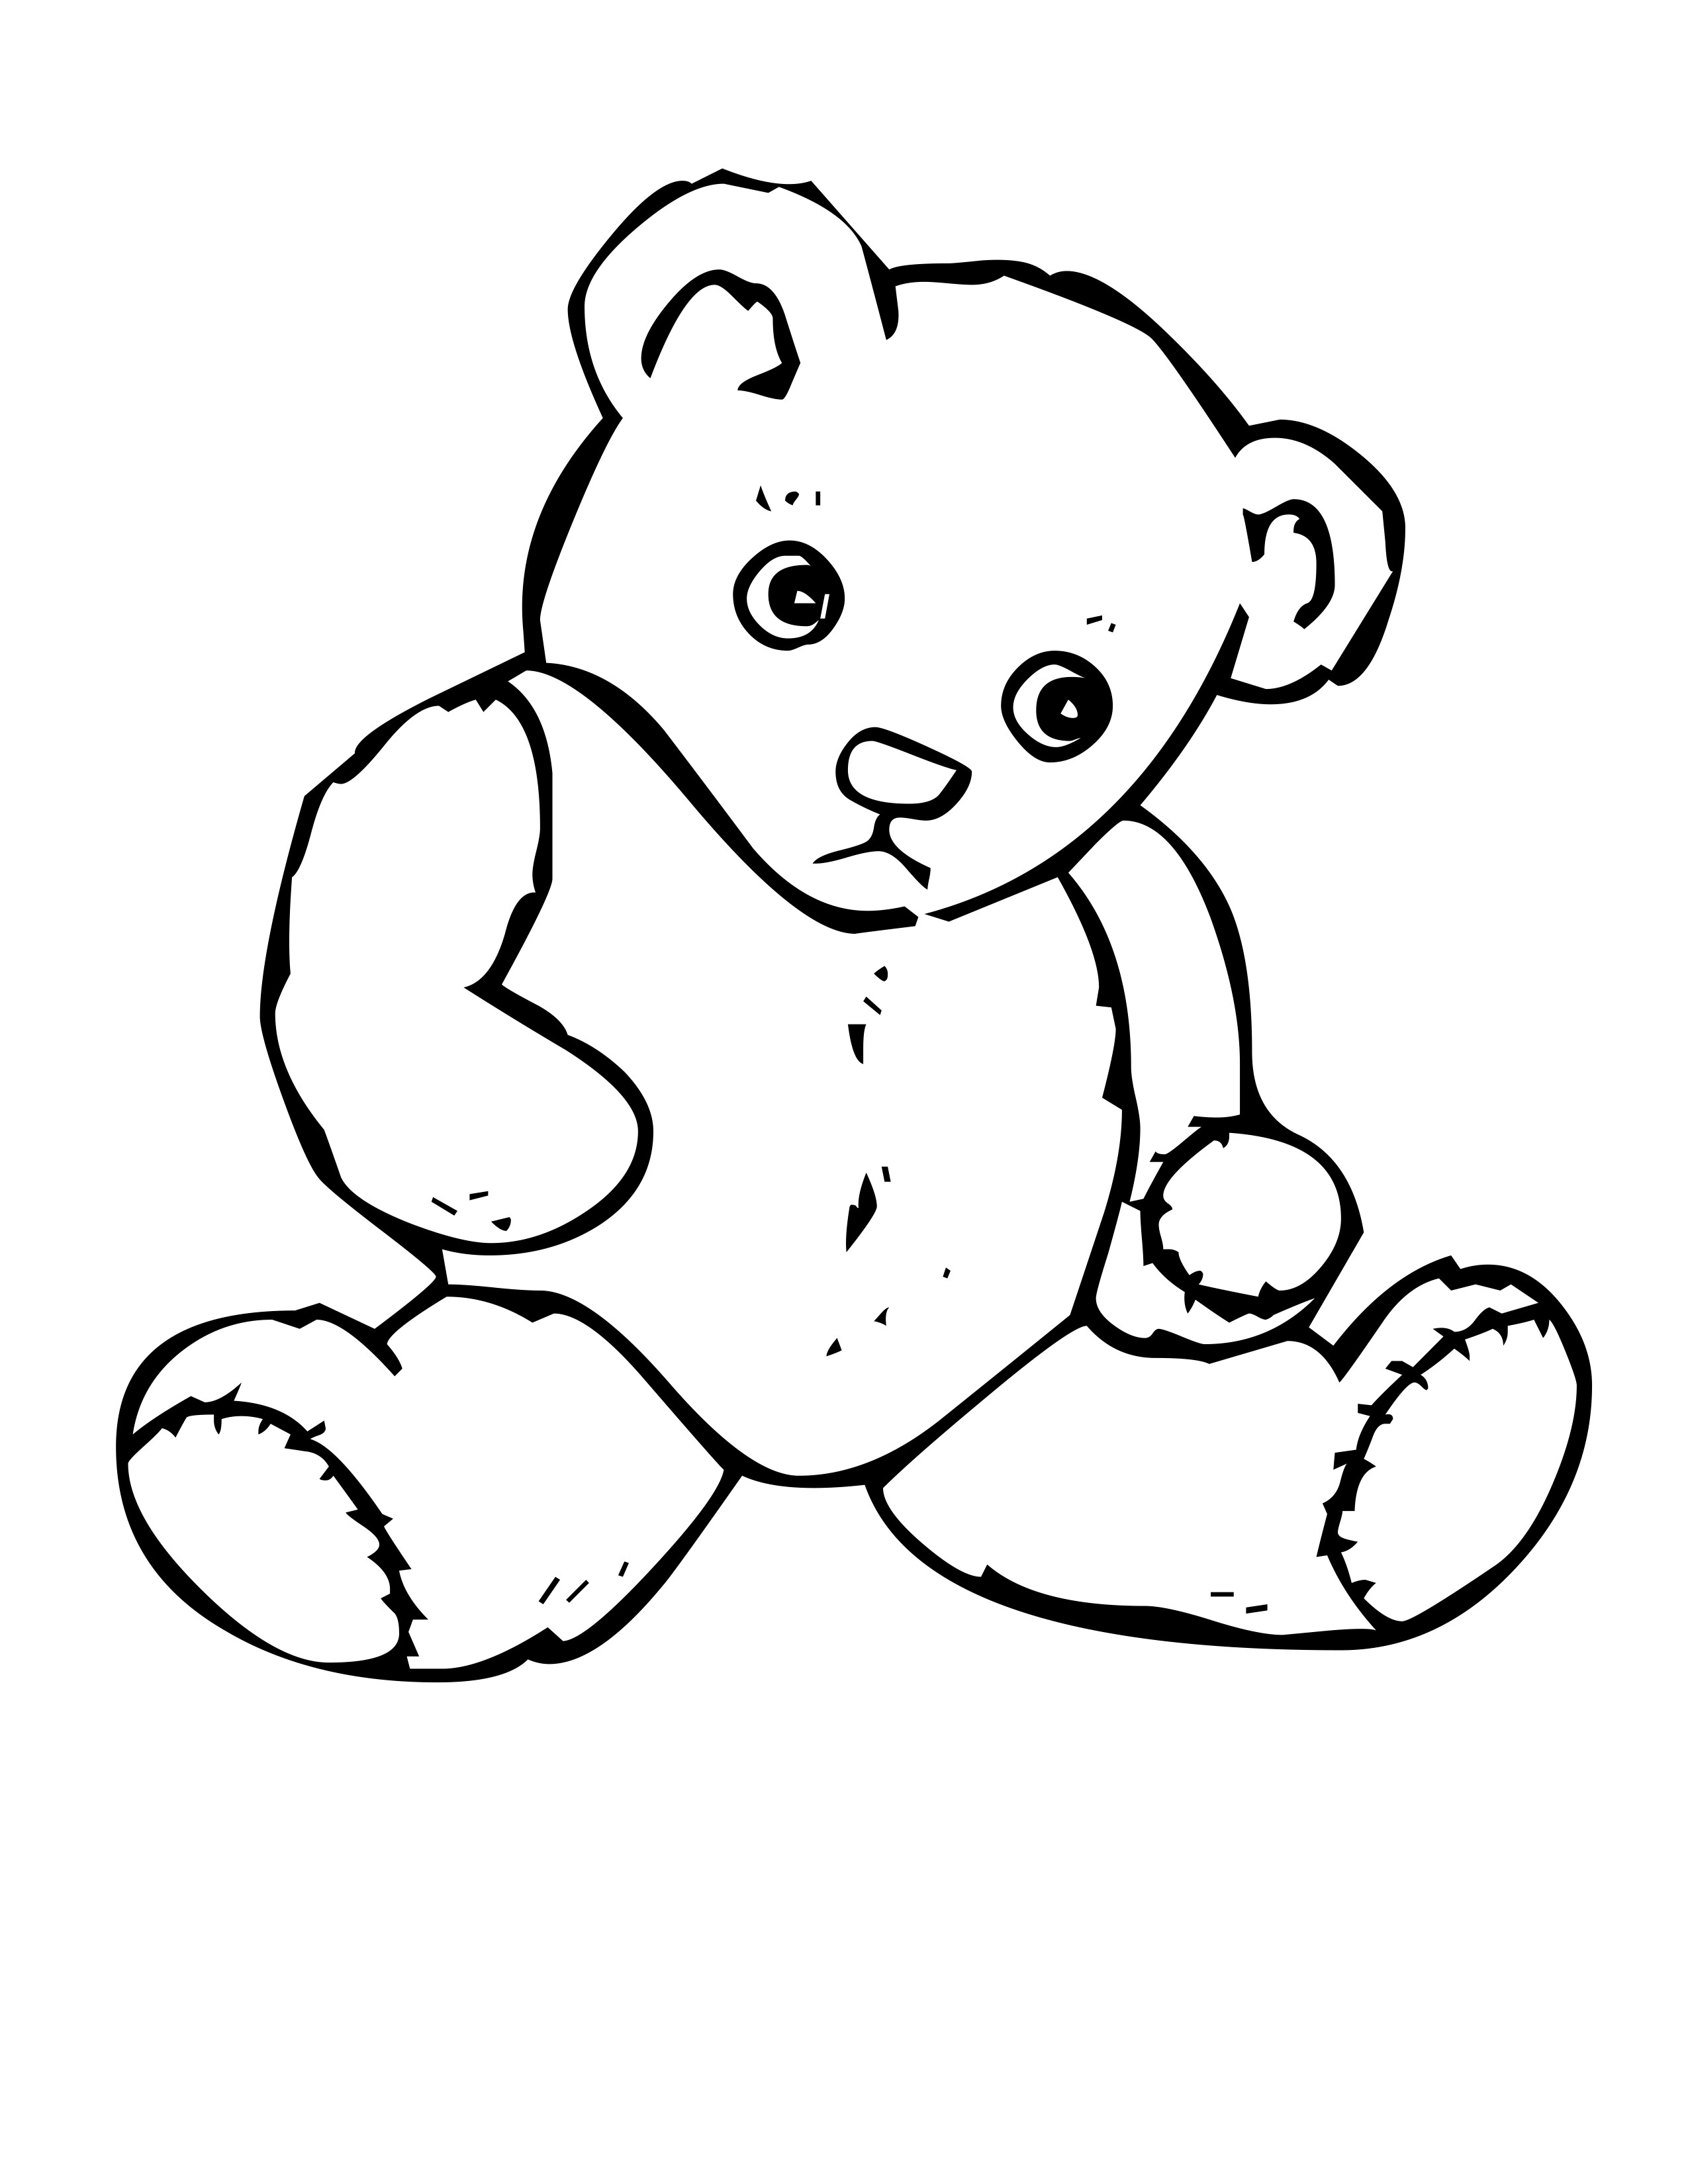 coloring pages of bears to print care bears coloring coloring pages kidsuki print coloring bears pages of to